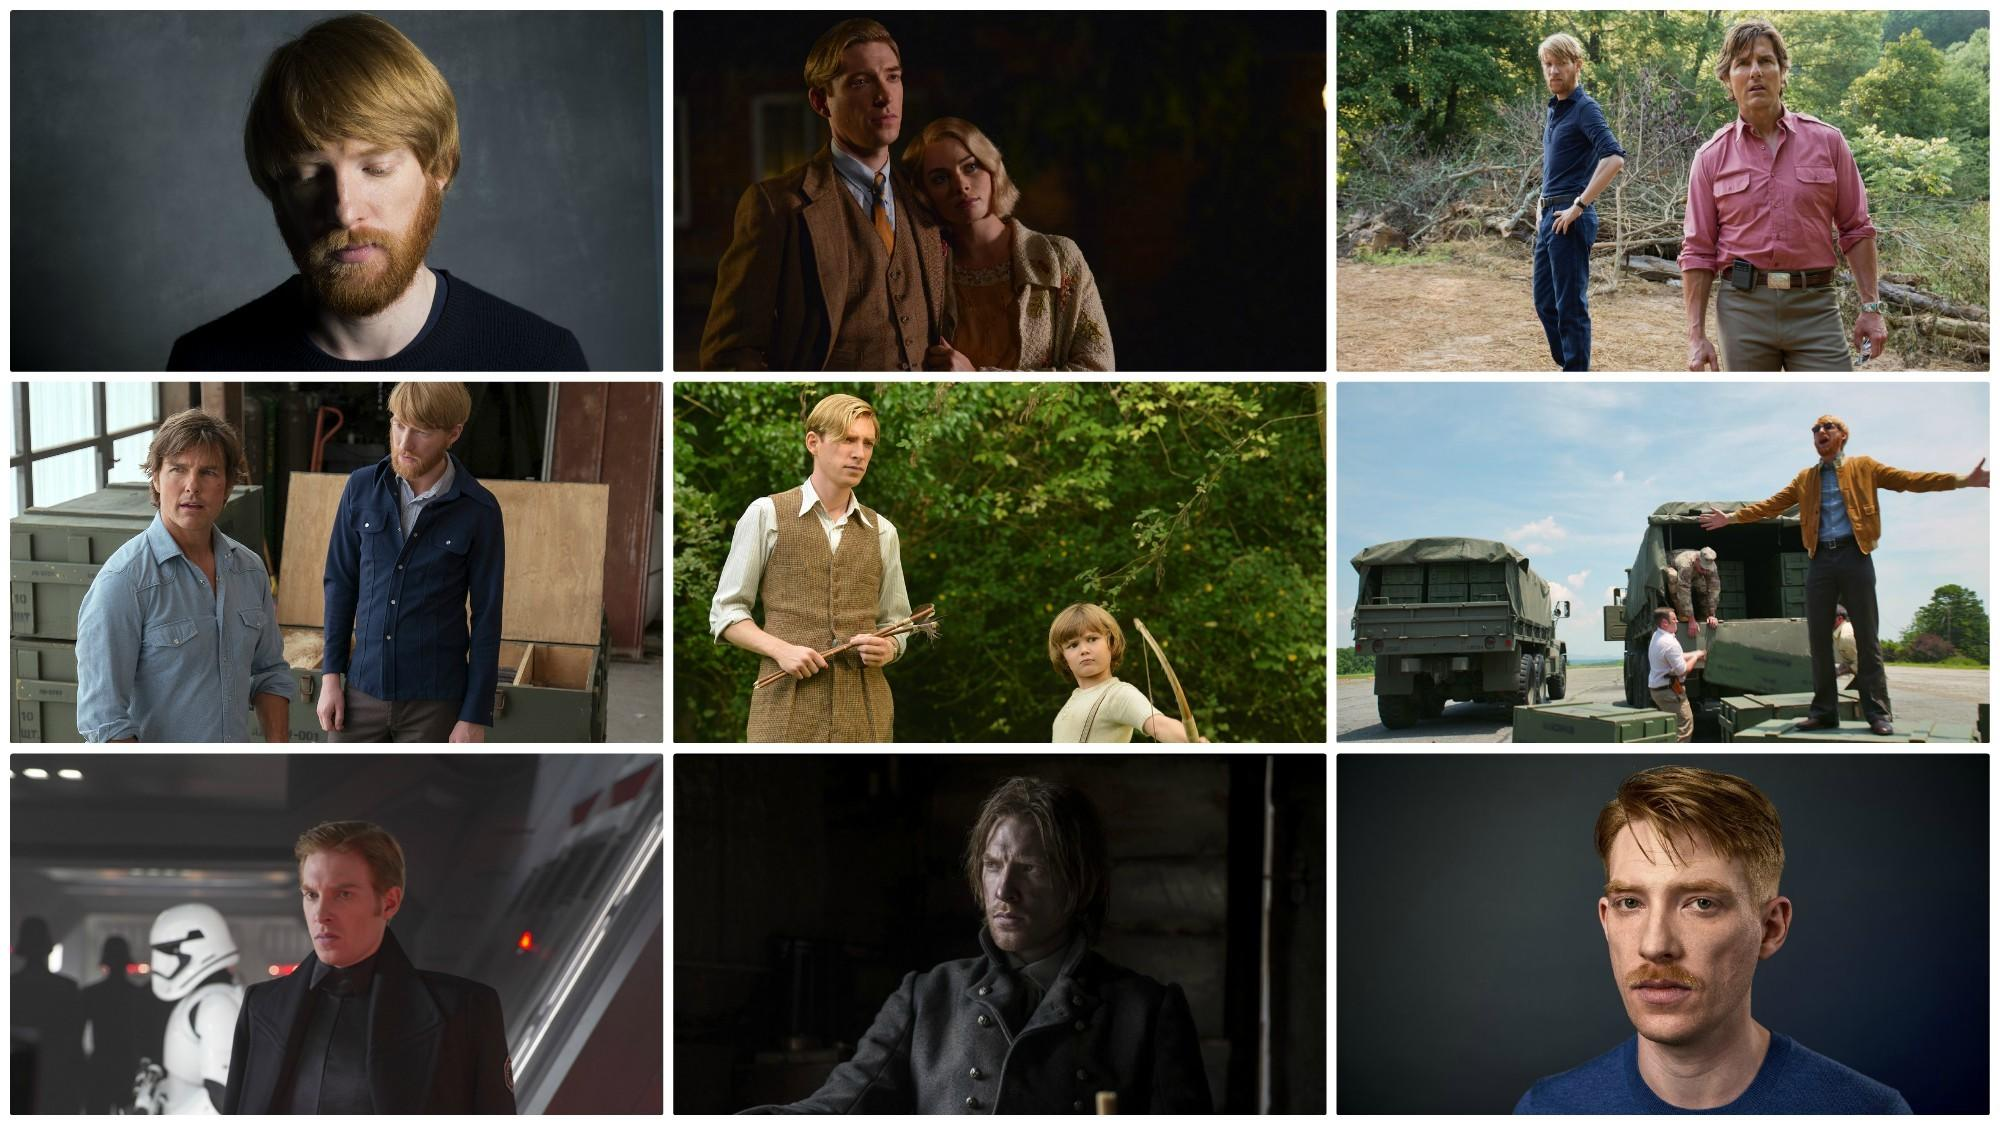 Photos from Domhnall Gleeson's film career. (Los Angeles Times / Fox Searchlight Pictures / Universal Pictures / Lucasfilm / Kimberley French / Twentieth Century Fox)